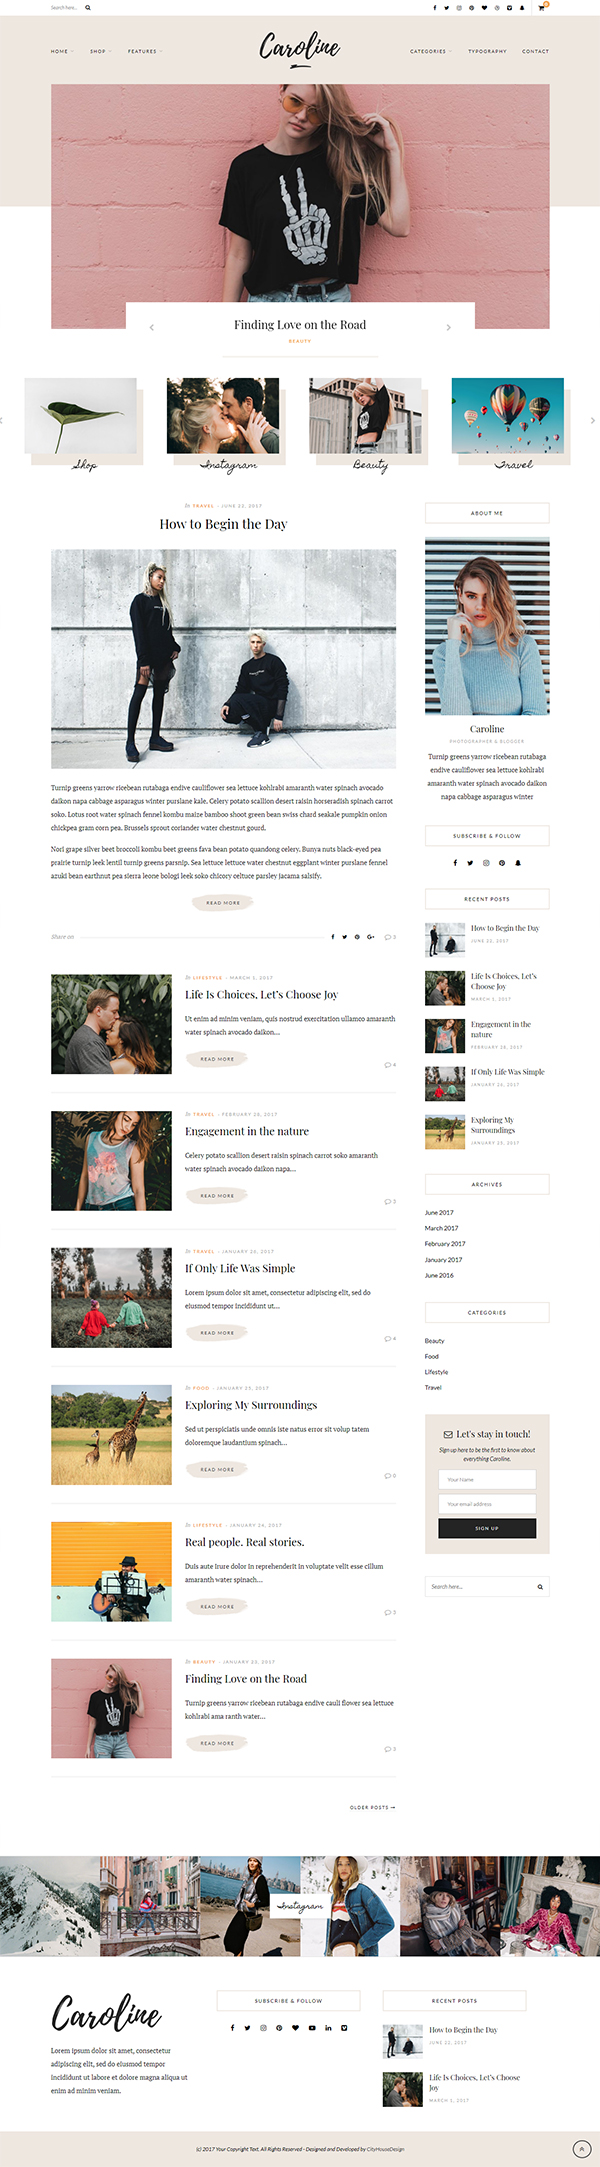 Caroline - A WordPress Blog Theme